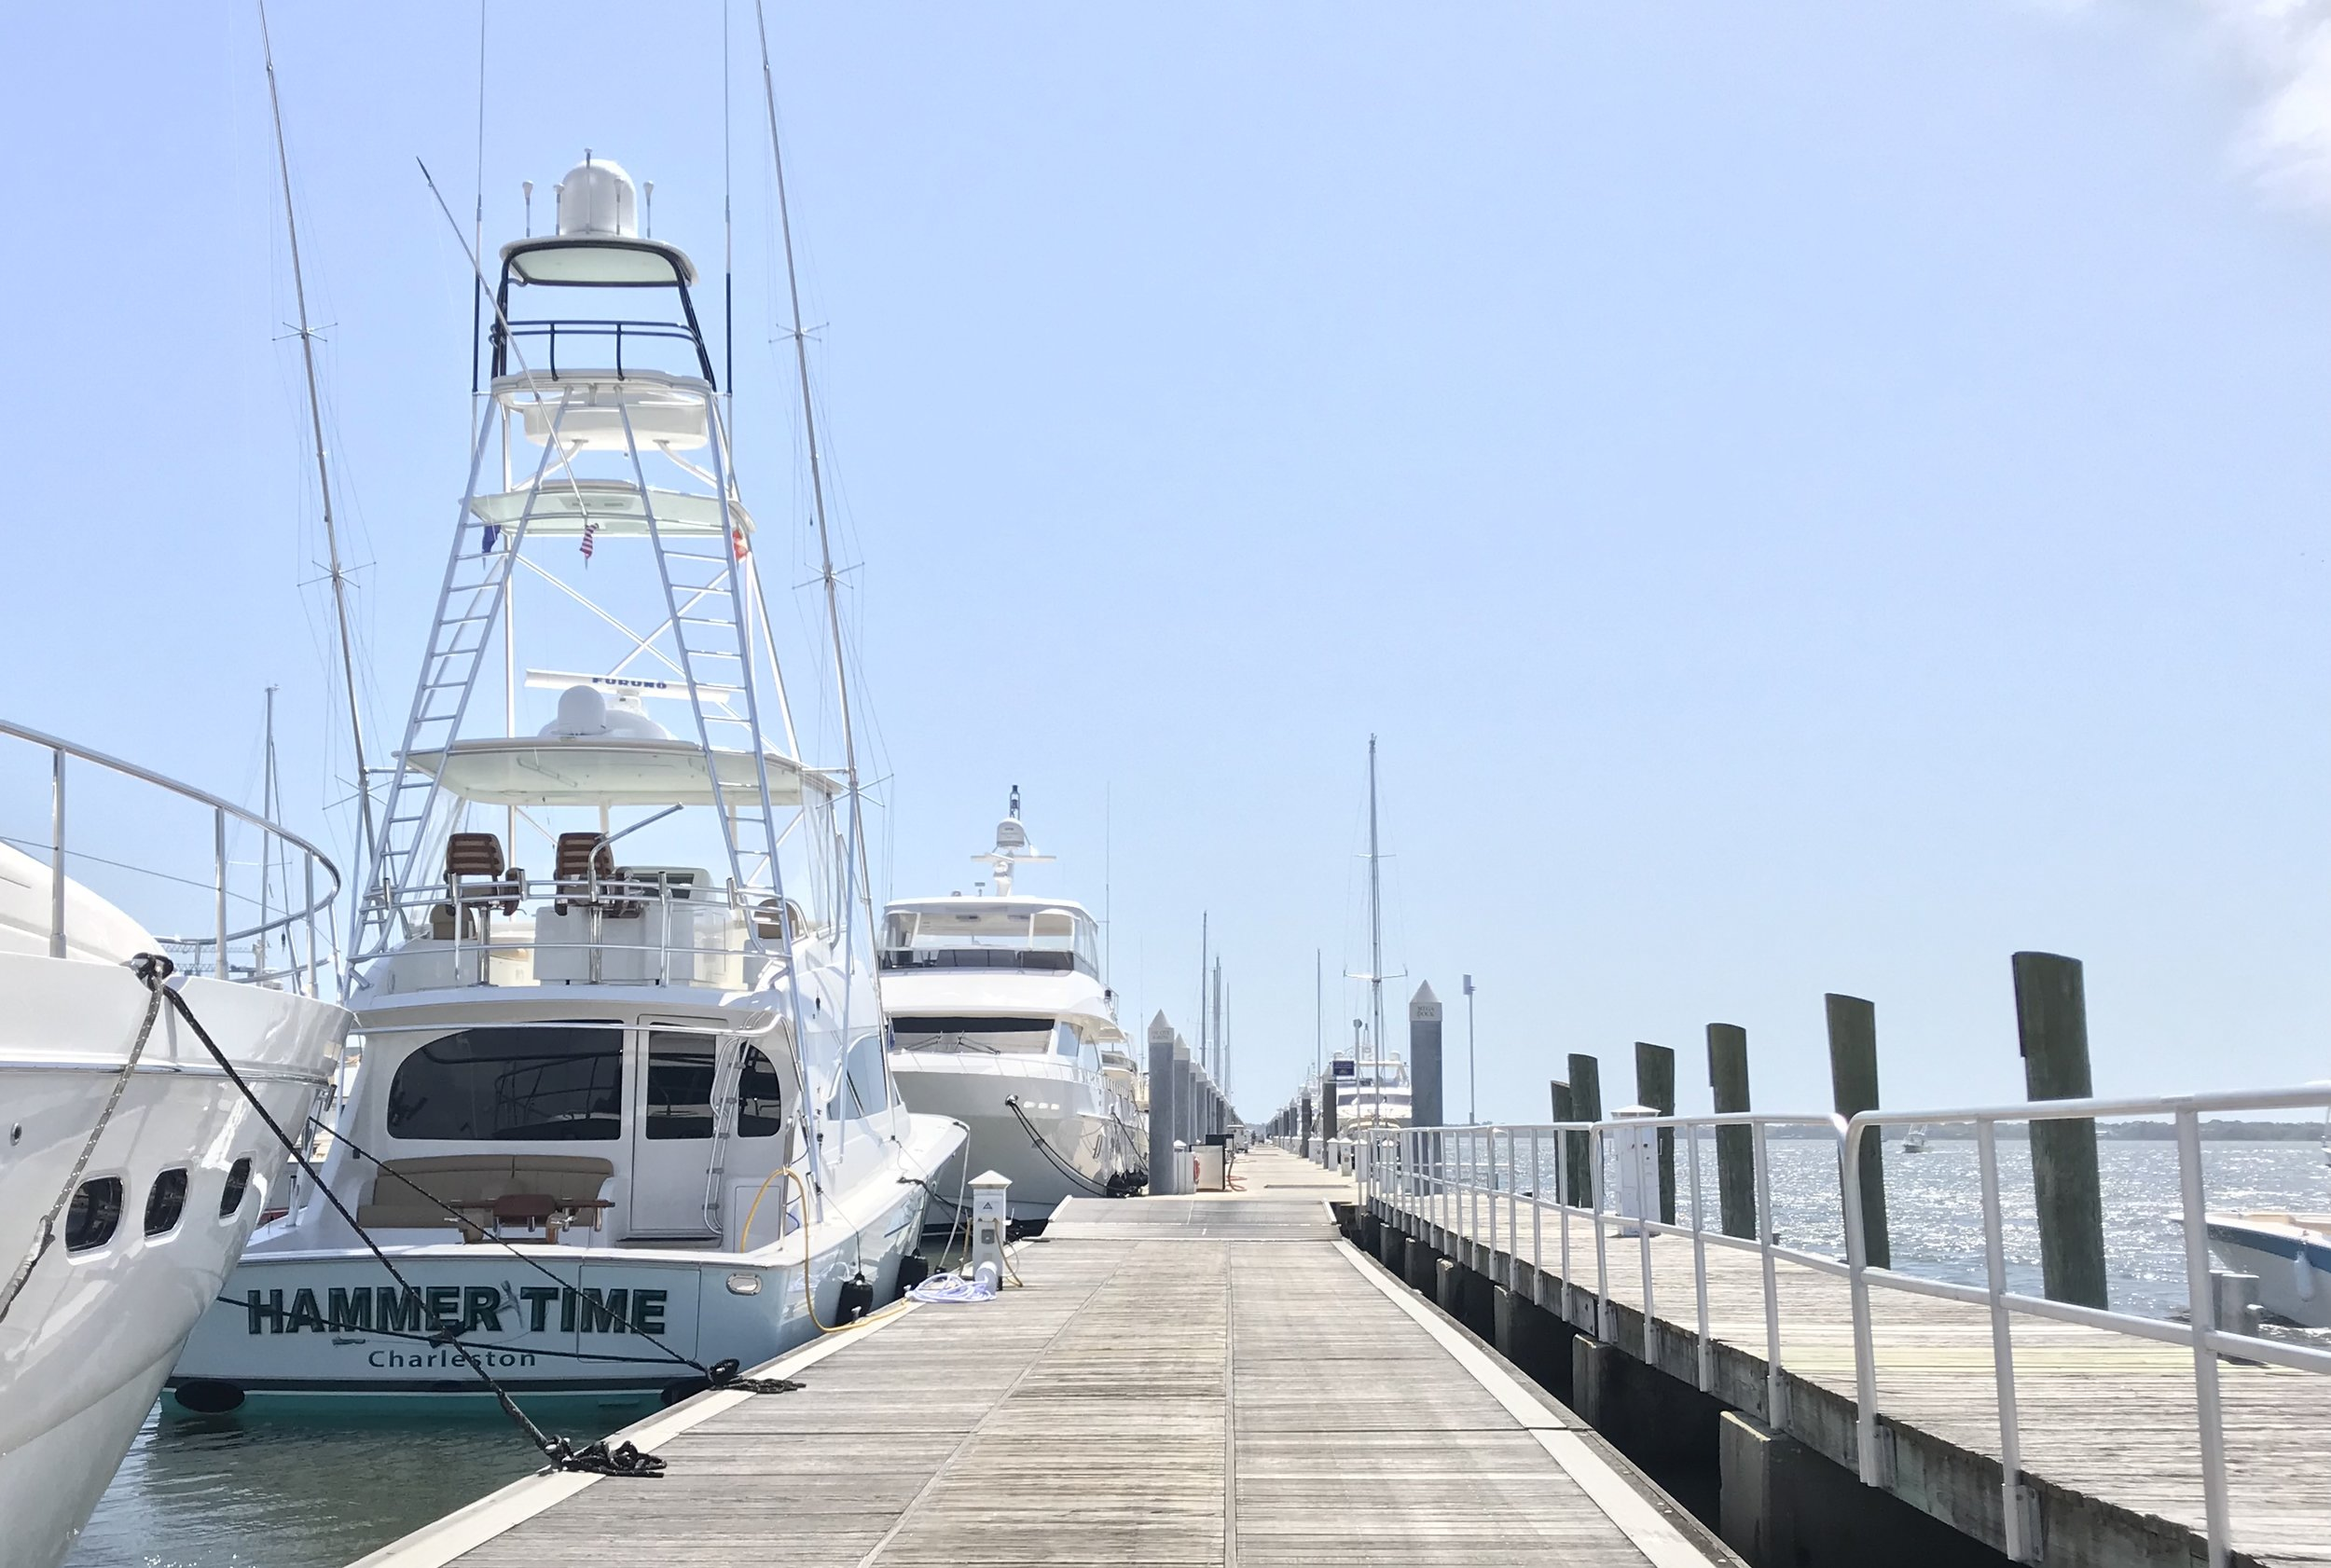 DOCKWALK: CHARLESTON CITY MARINA